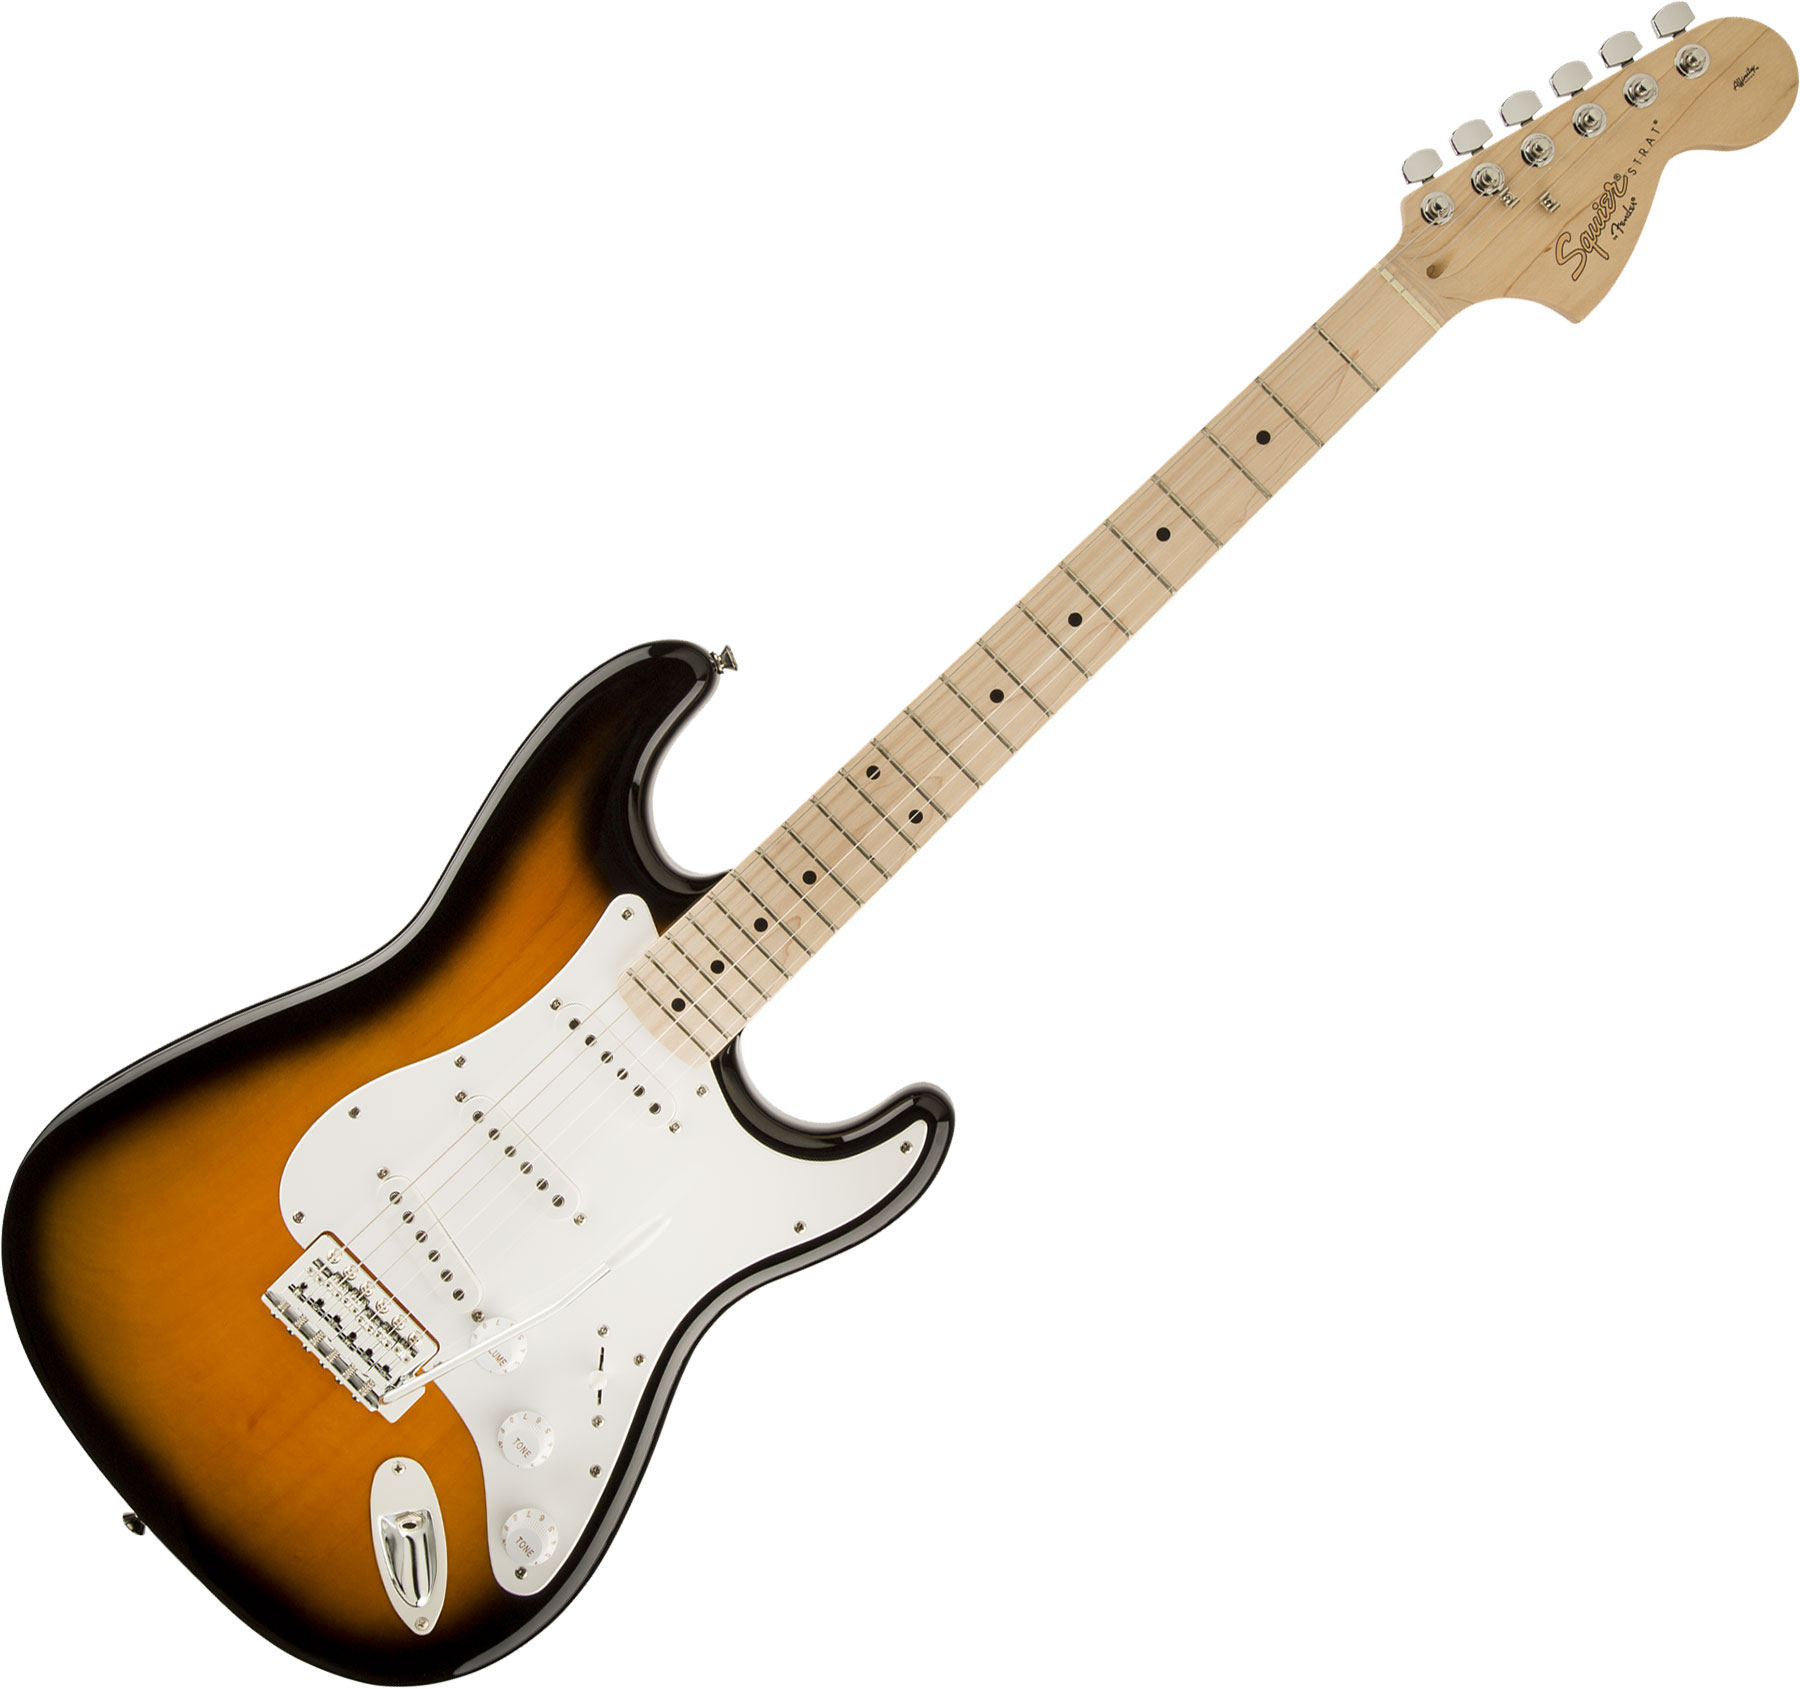 Squier Affinity Series Stratocaster (MN) - 2-color